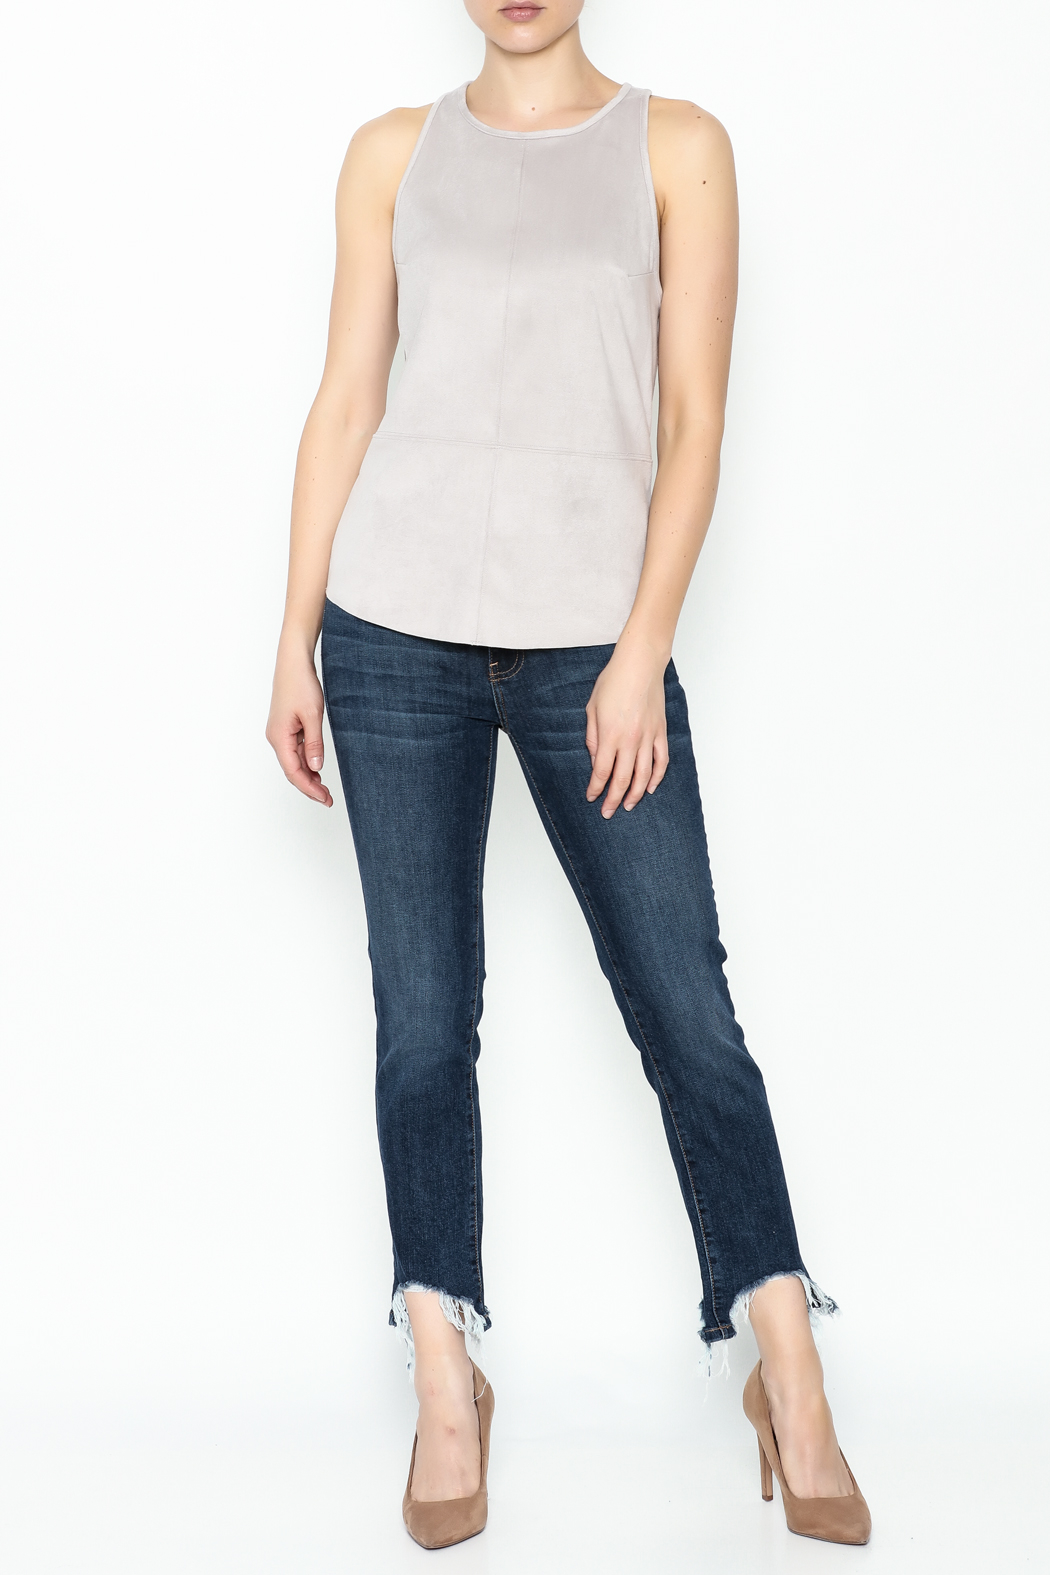 Gentle Fawn Faux Suede Top - Side Cropped Image